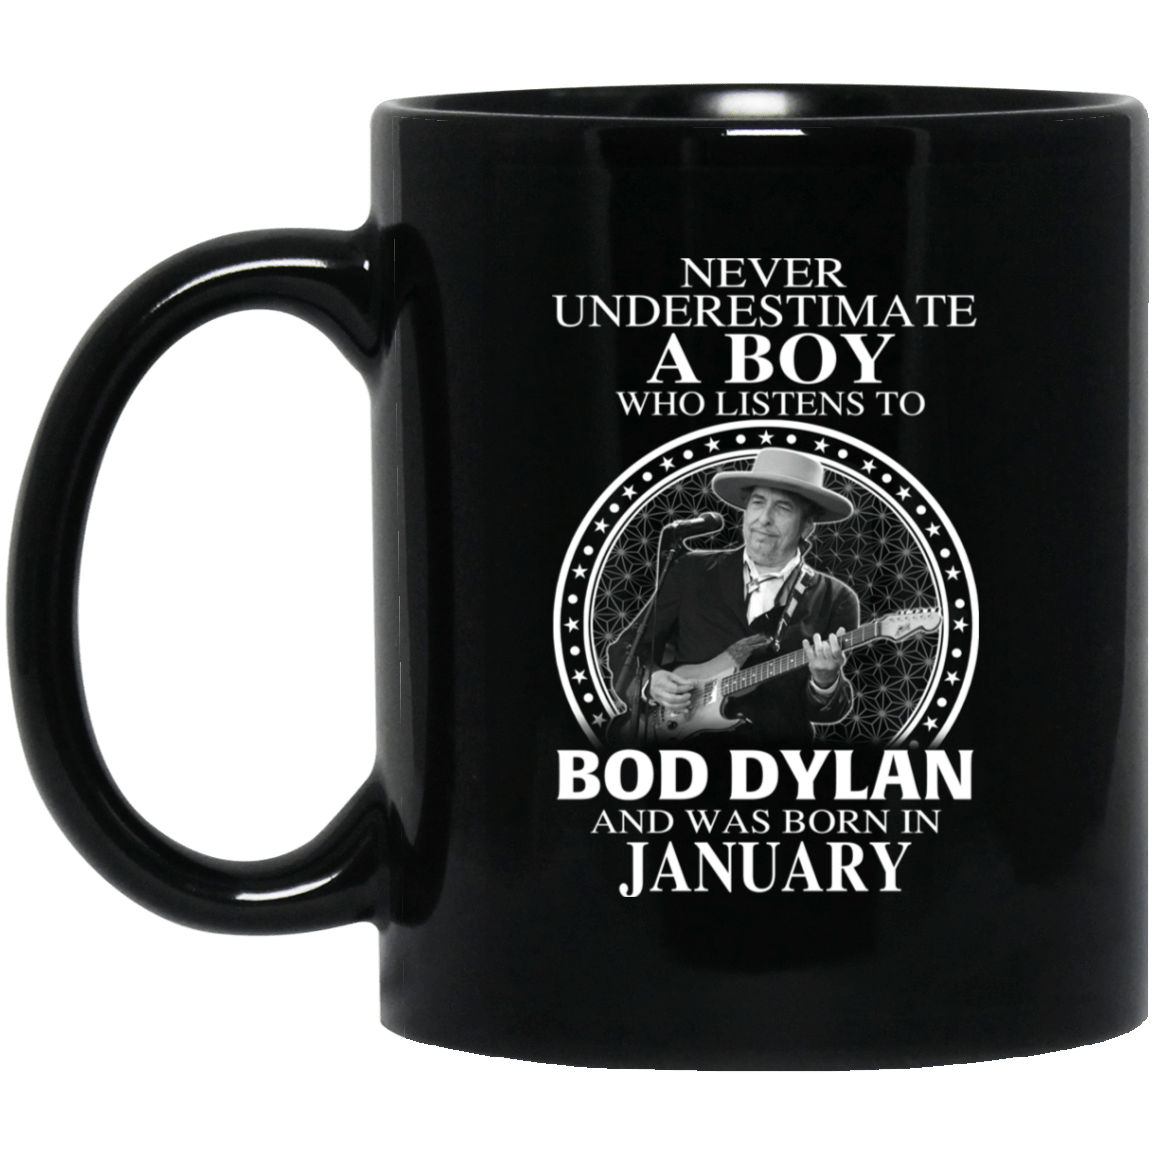 A Boy Who Listens To Bob Dylan And Was Born In January Mug 1065-10181-76154924-49307 - Tee Ript